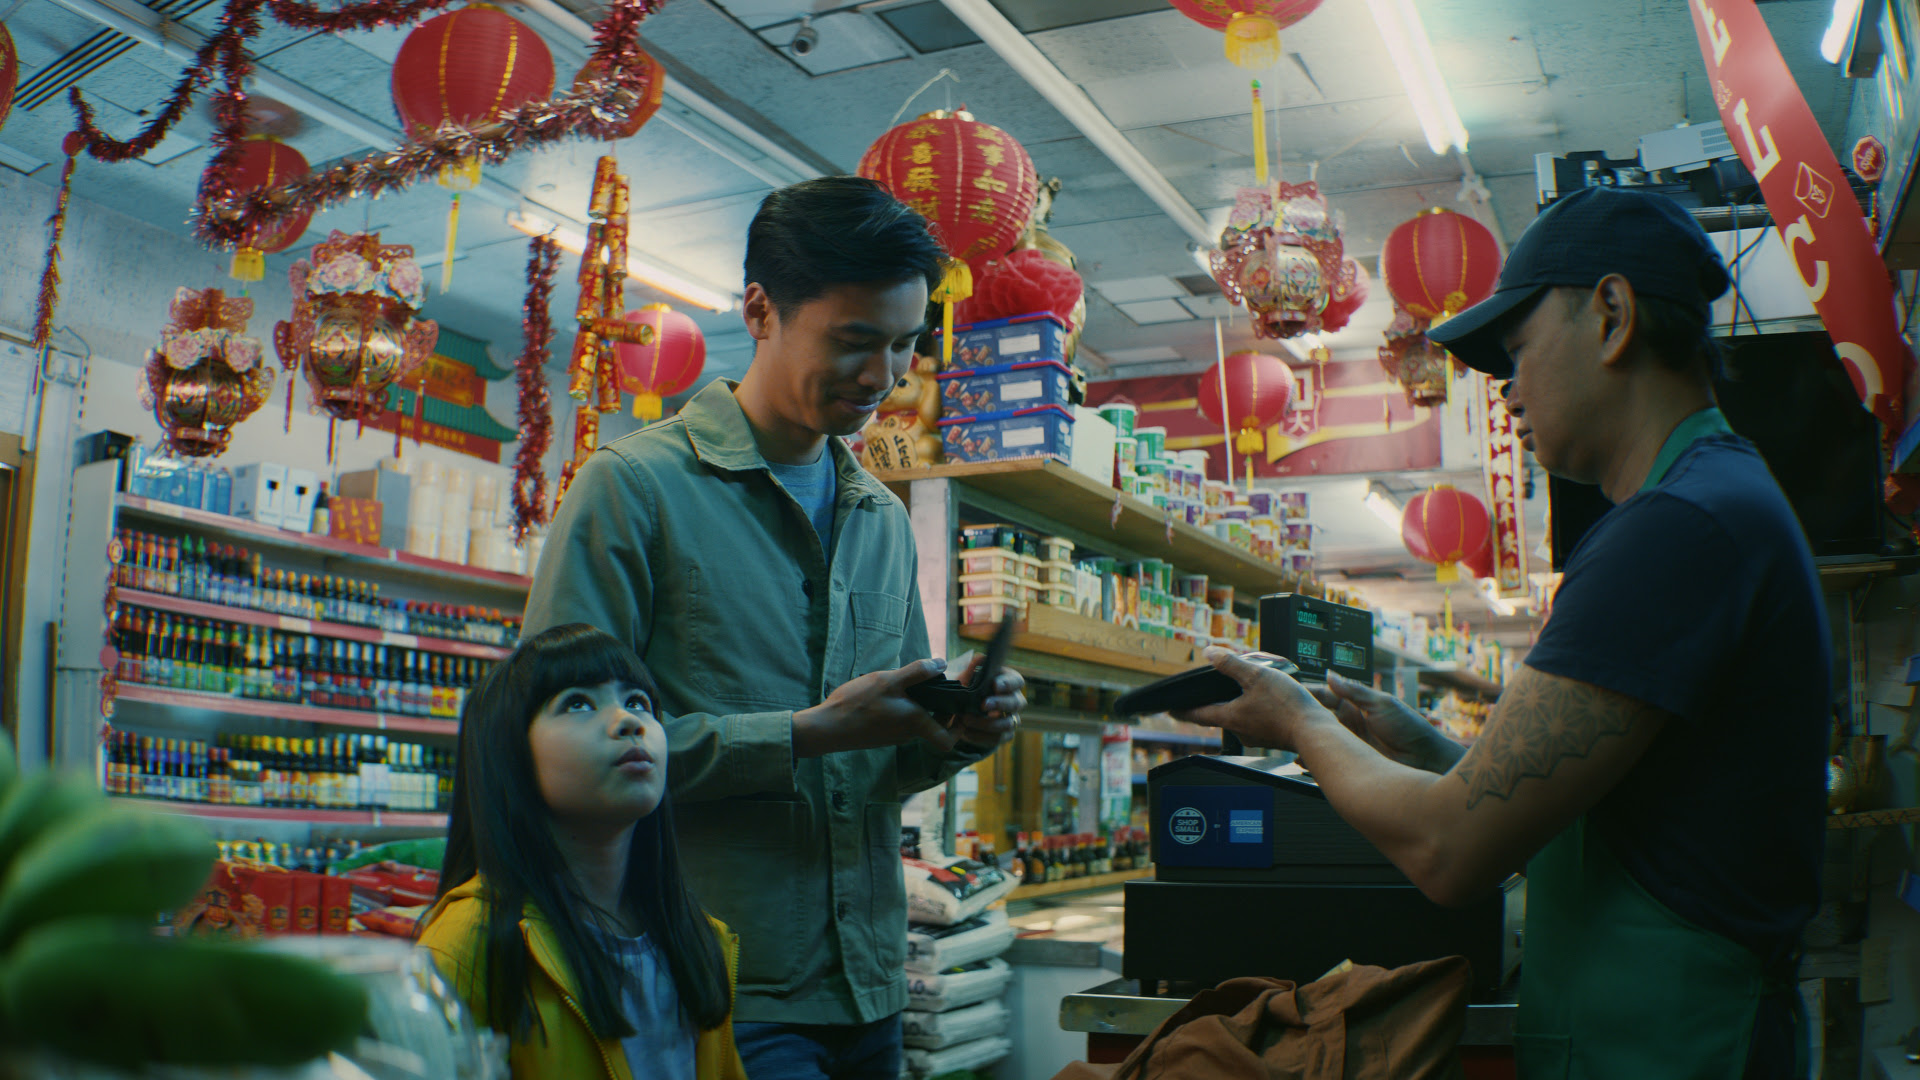 a man and his daughter are paying for an item in an asian grocery shop